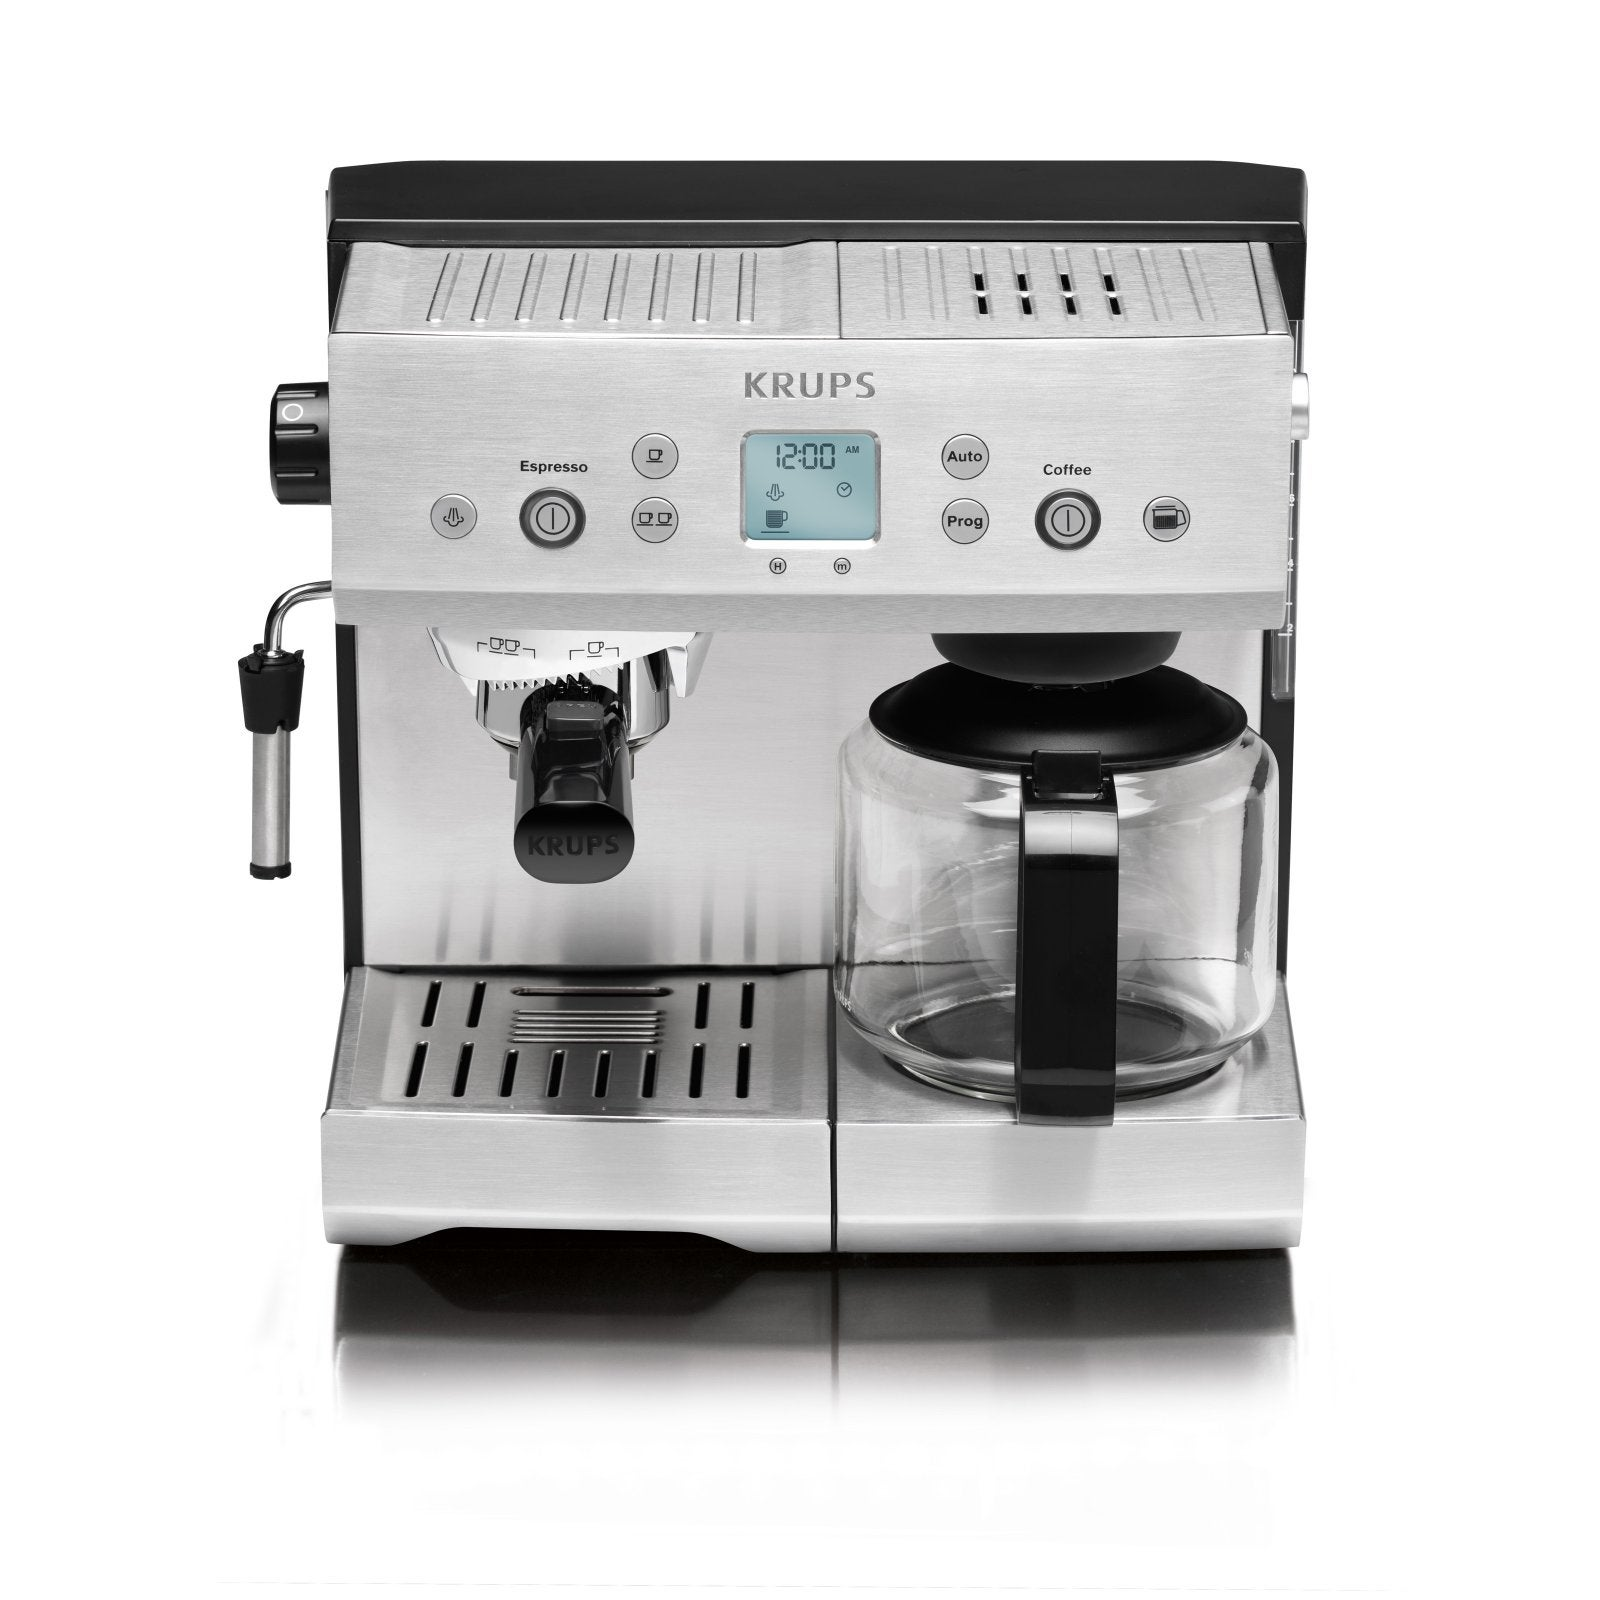 krups xp2280 programmable coffee and espresso machine. Black Bedroom Furniture Sets. Home Design Ideas